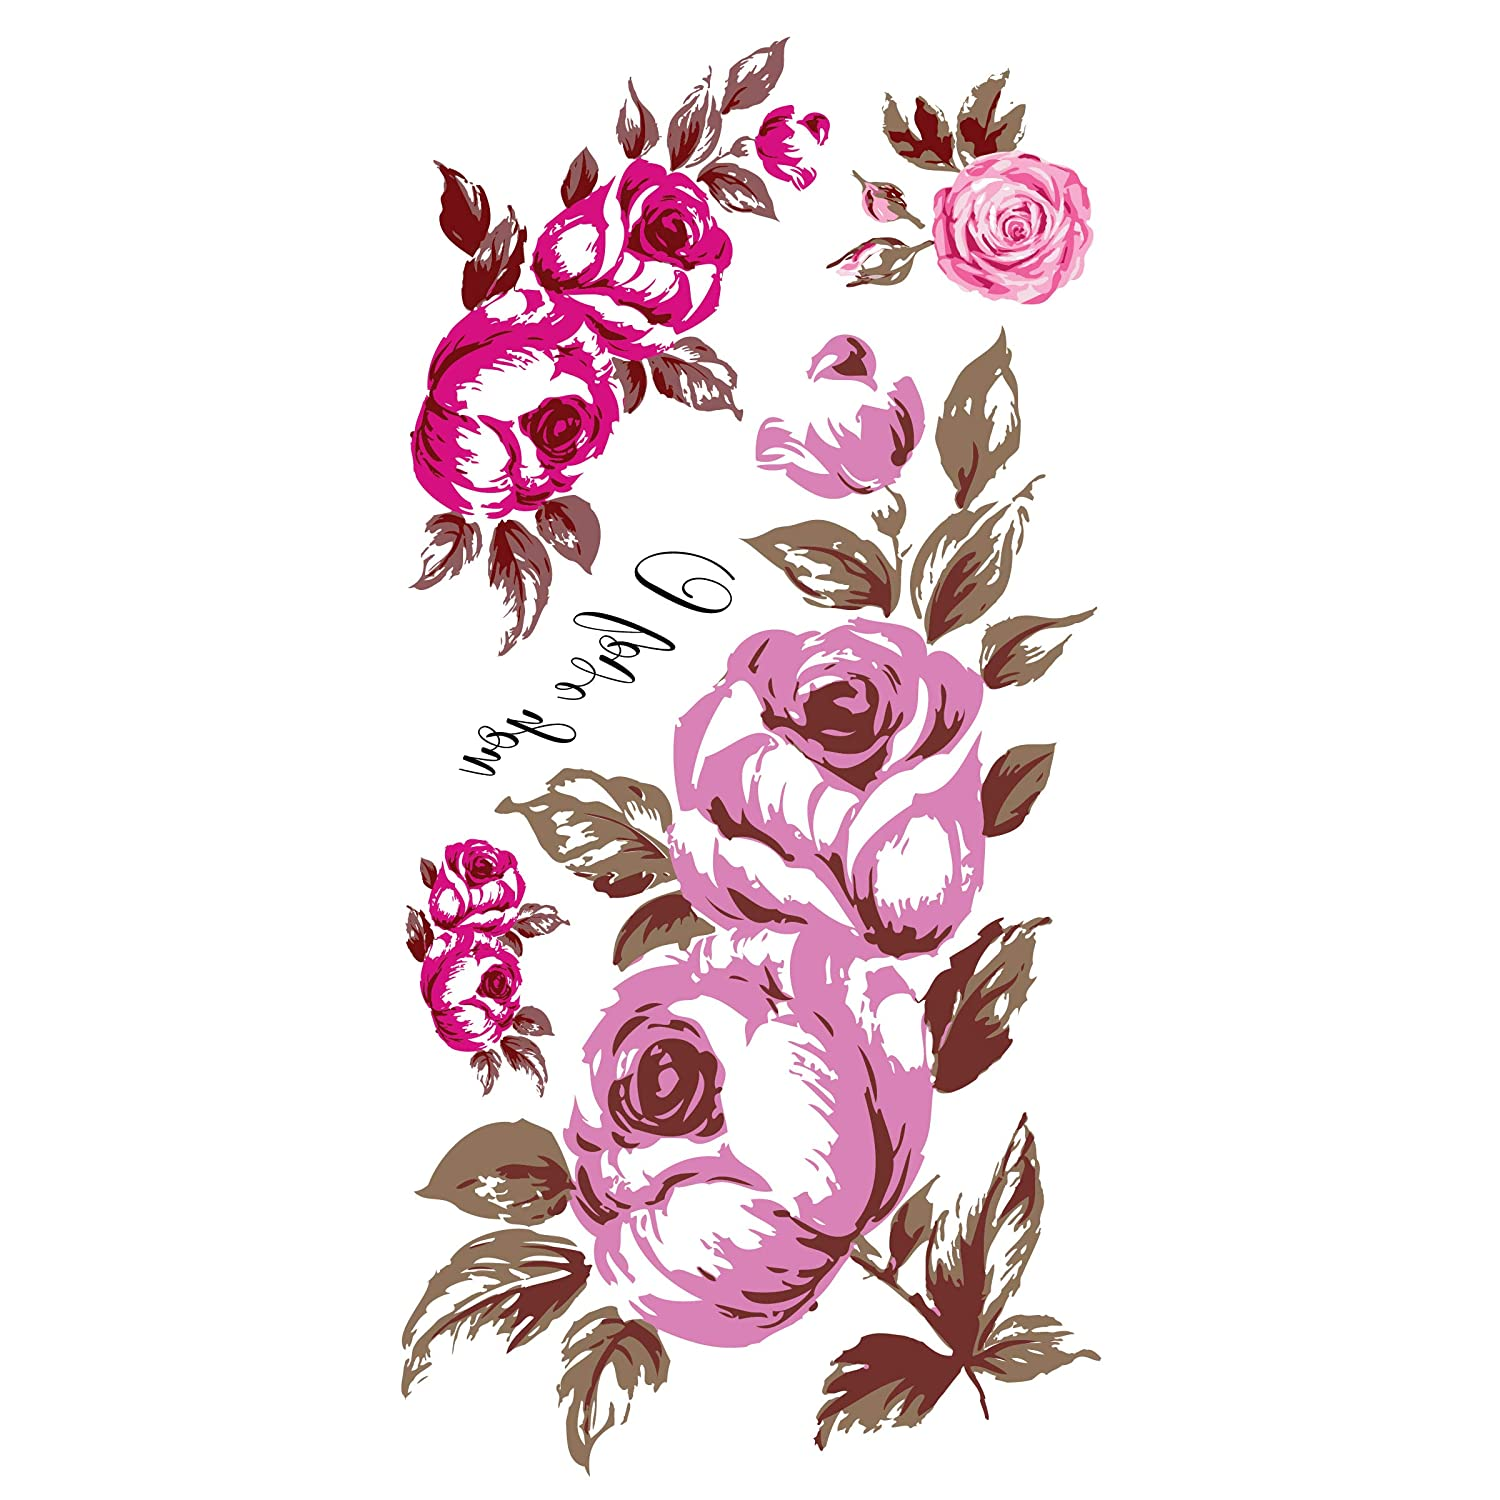 Supperb Discount is also underway Temporary Tattoos Rosebud - It is very popular